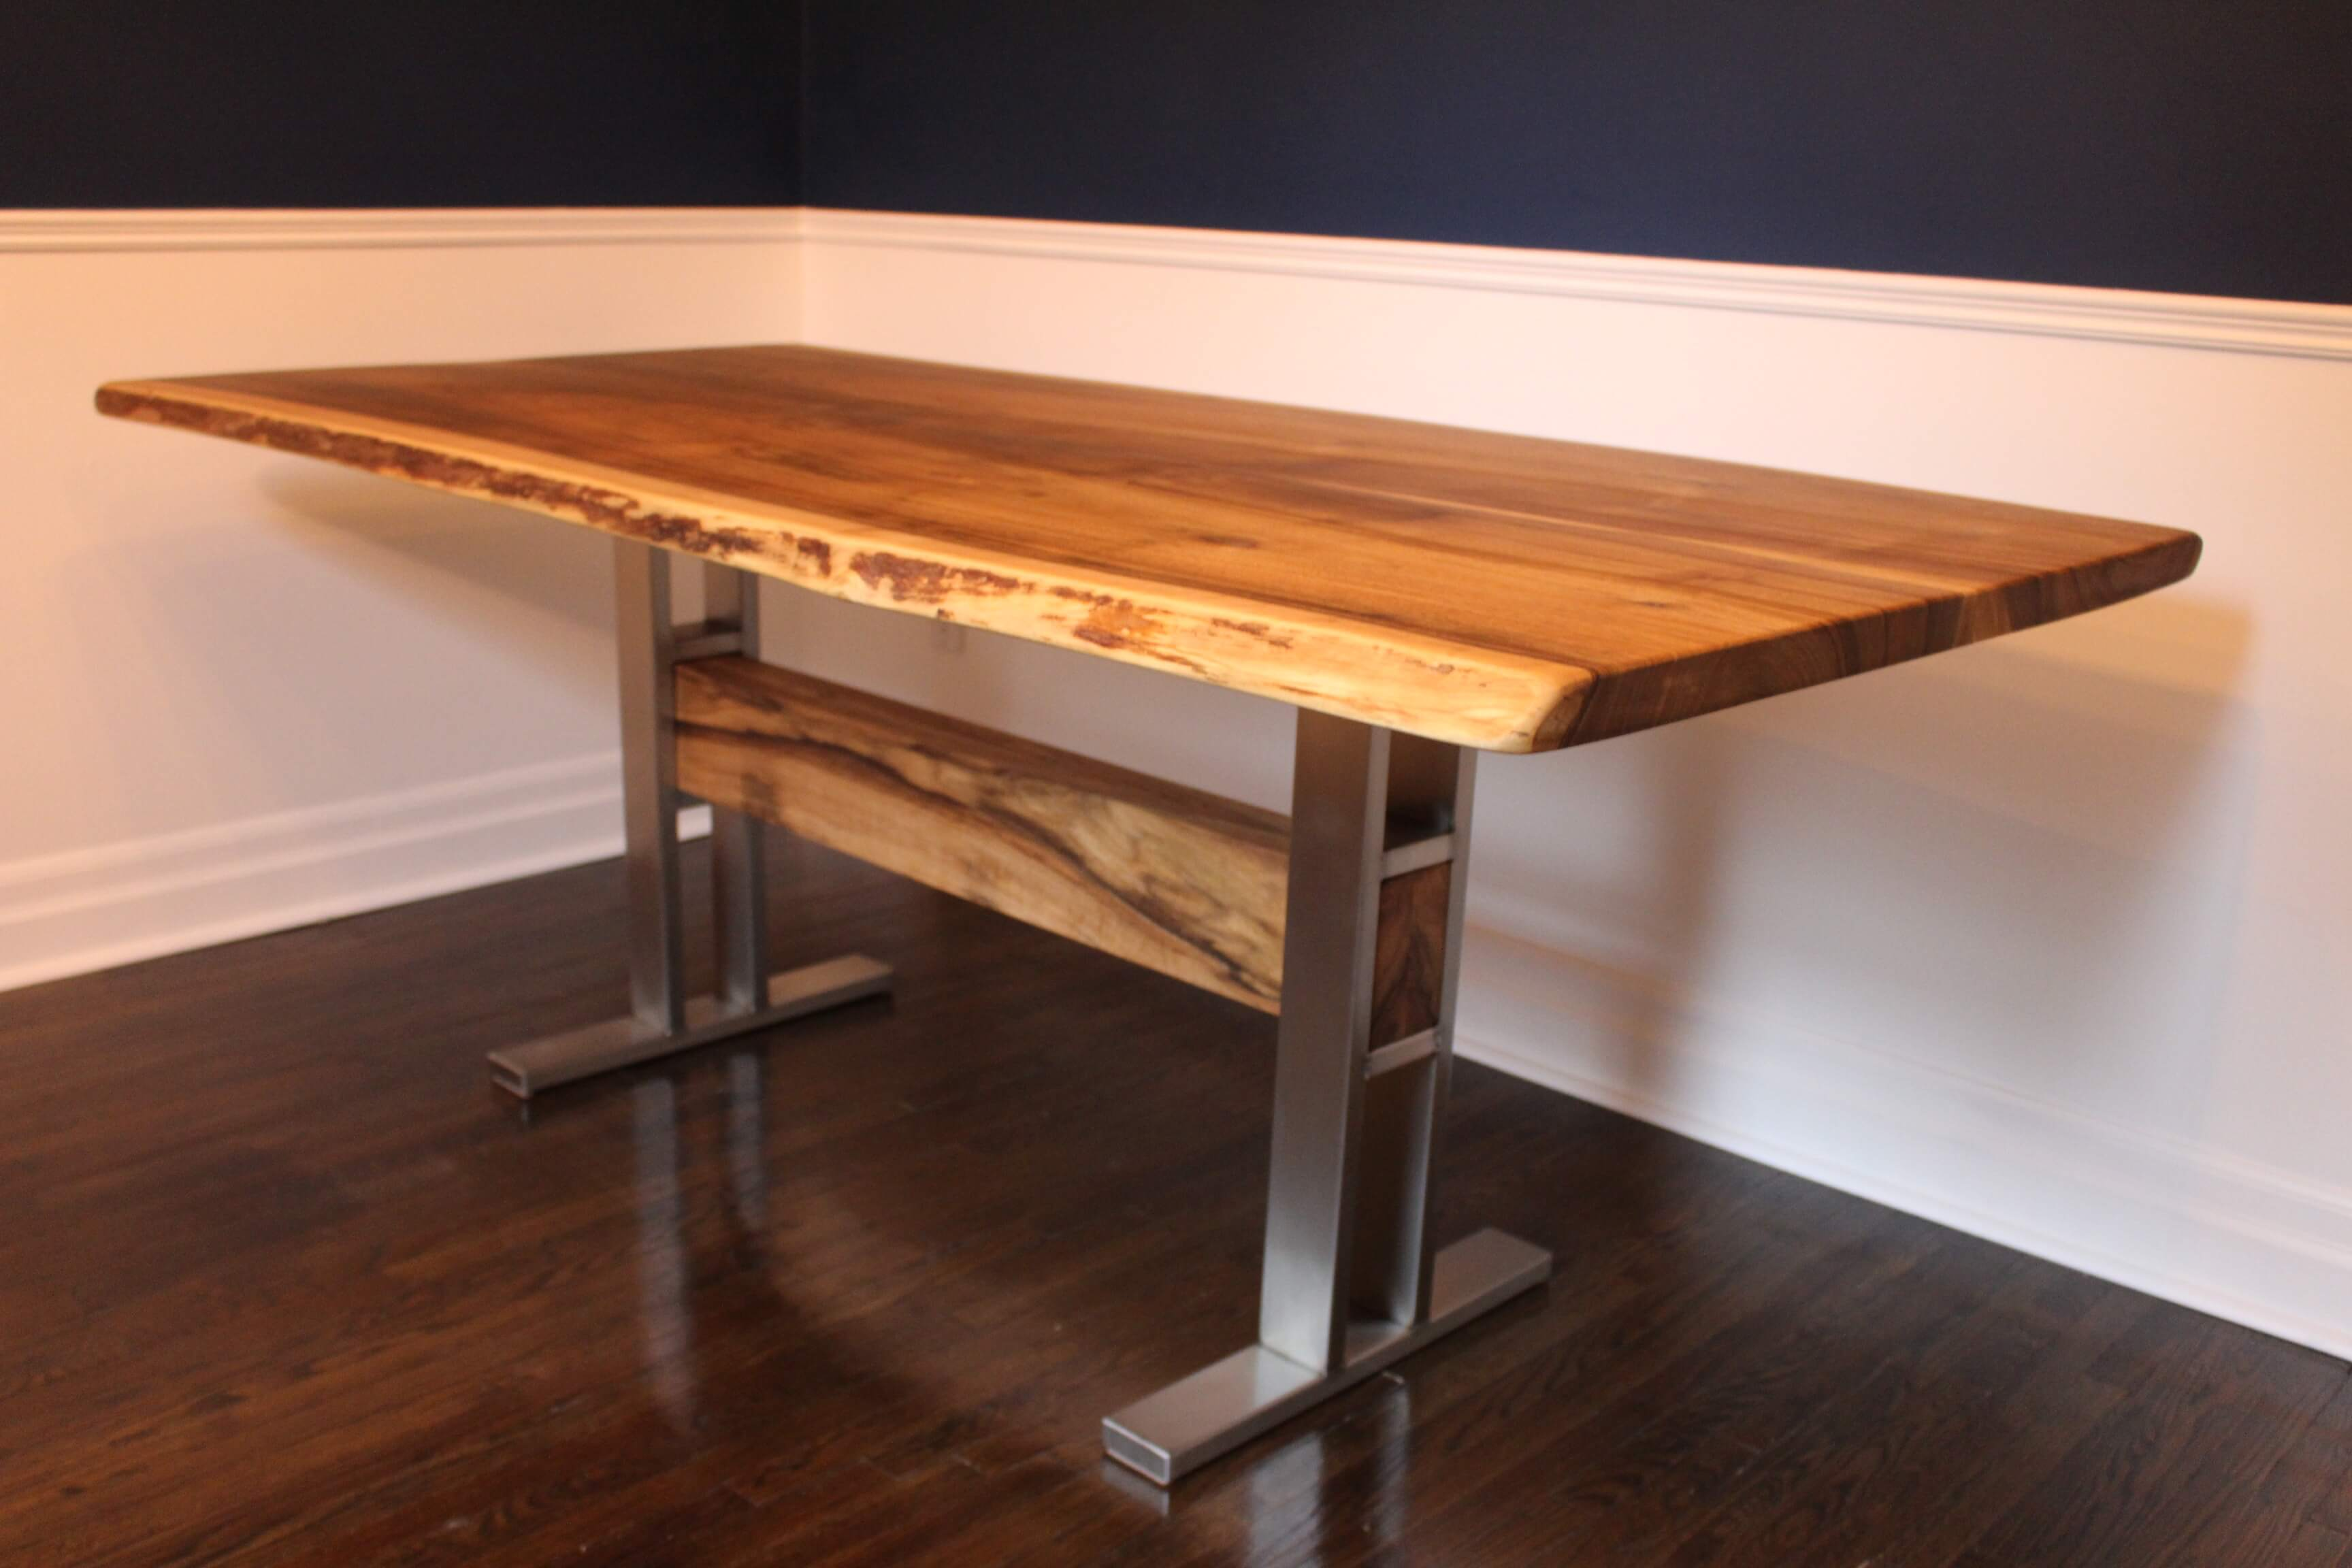 live edge walnut table with stainless steel trestle base with wood beam, made in muskoka, ships to NYC and toronto